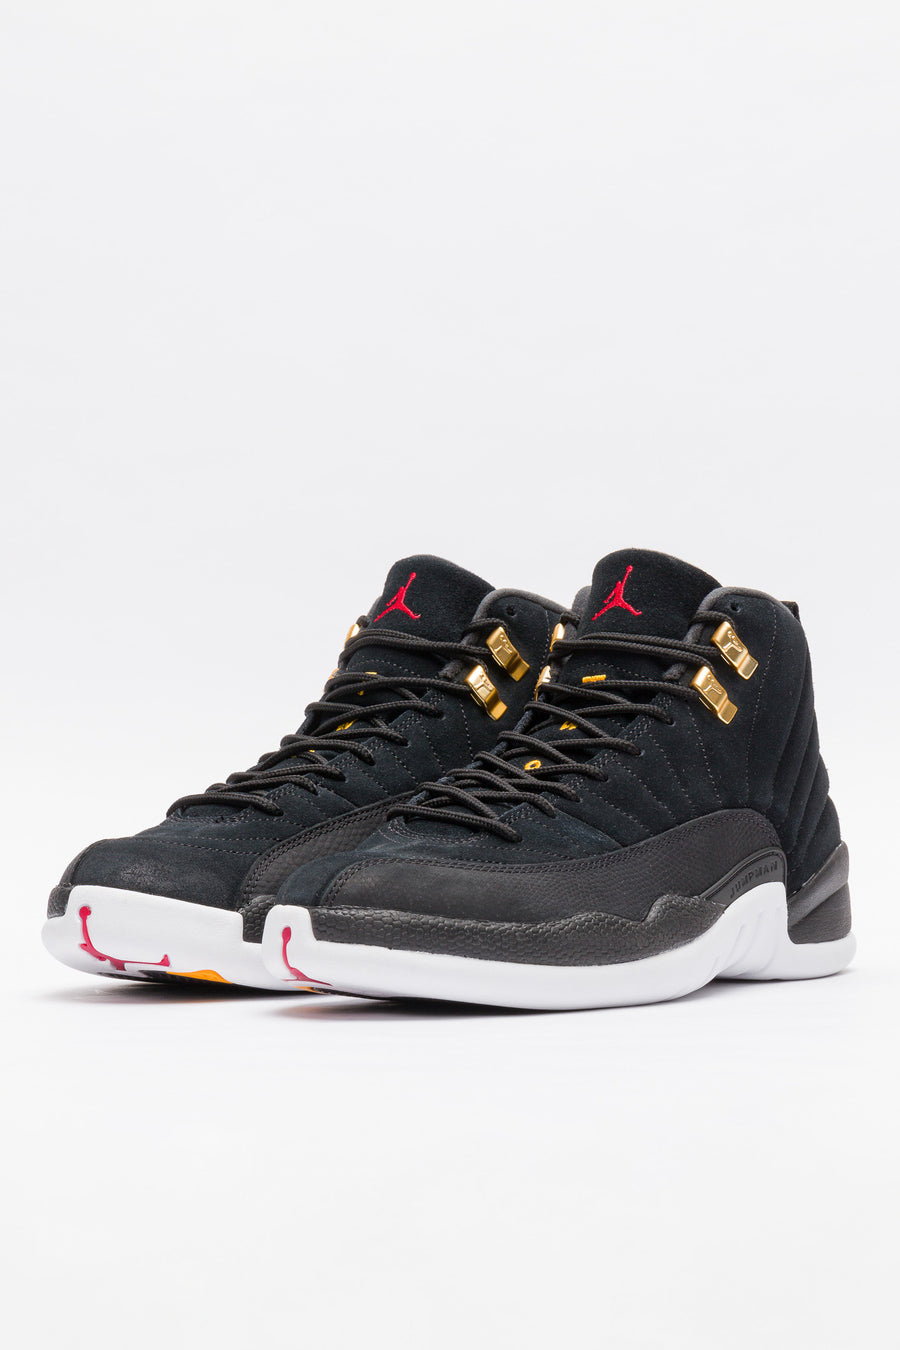 Jordan Air Jordan 12 Retro in Black/White/Taxi - Notre